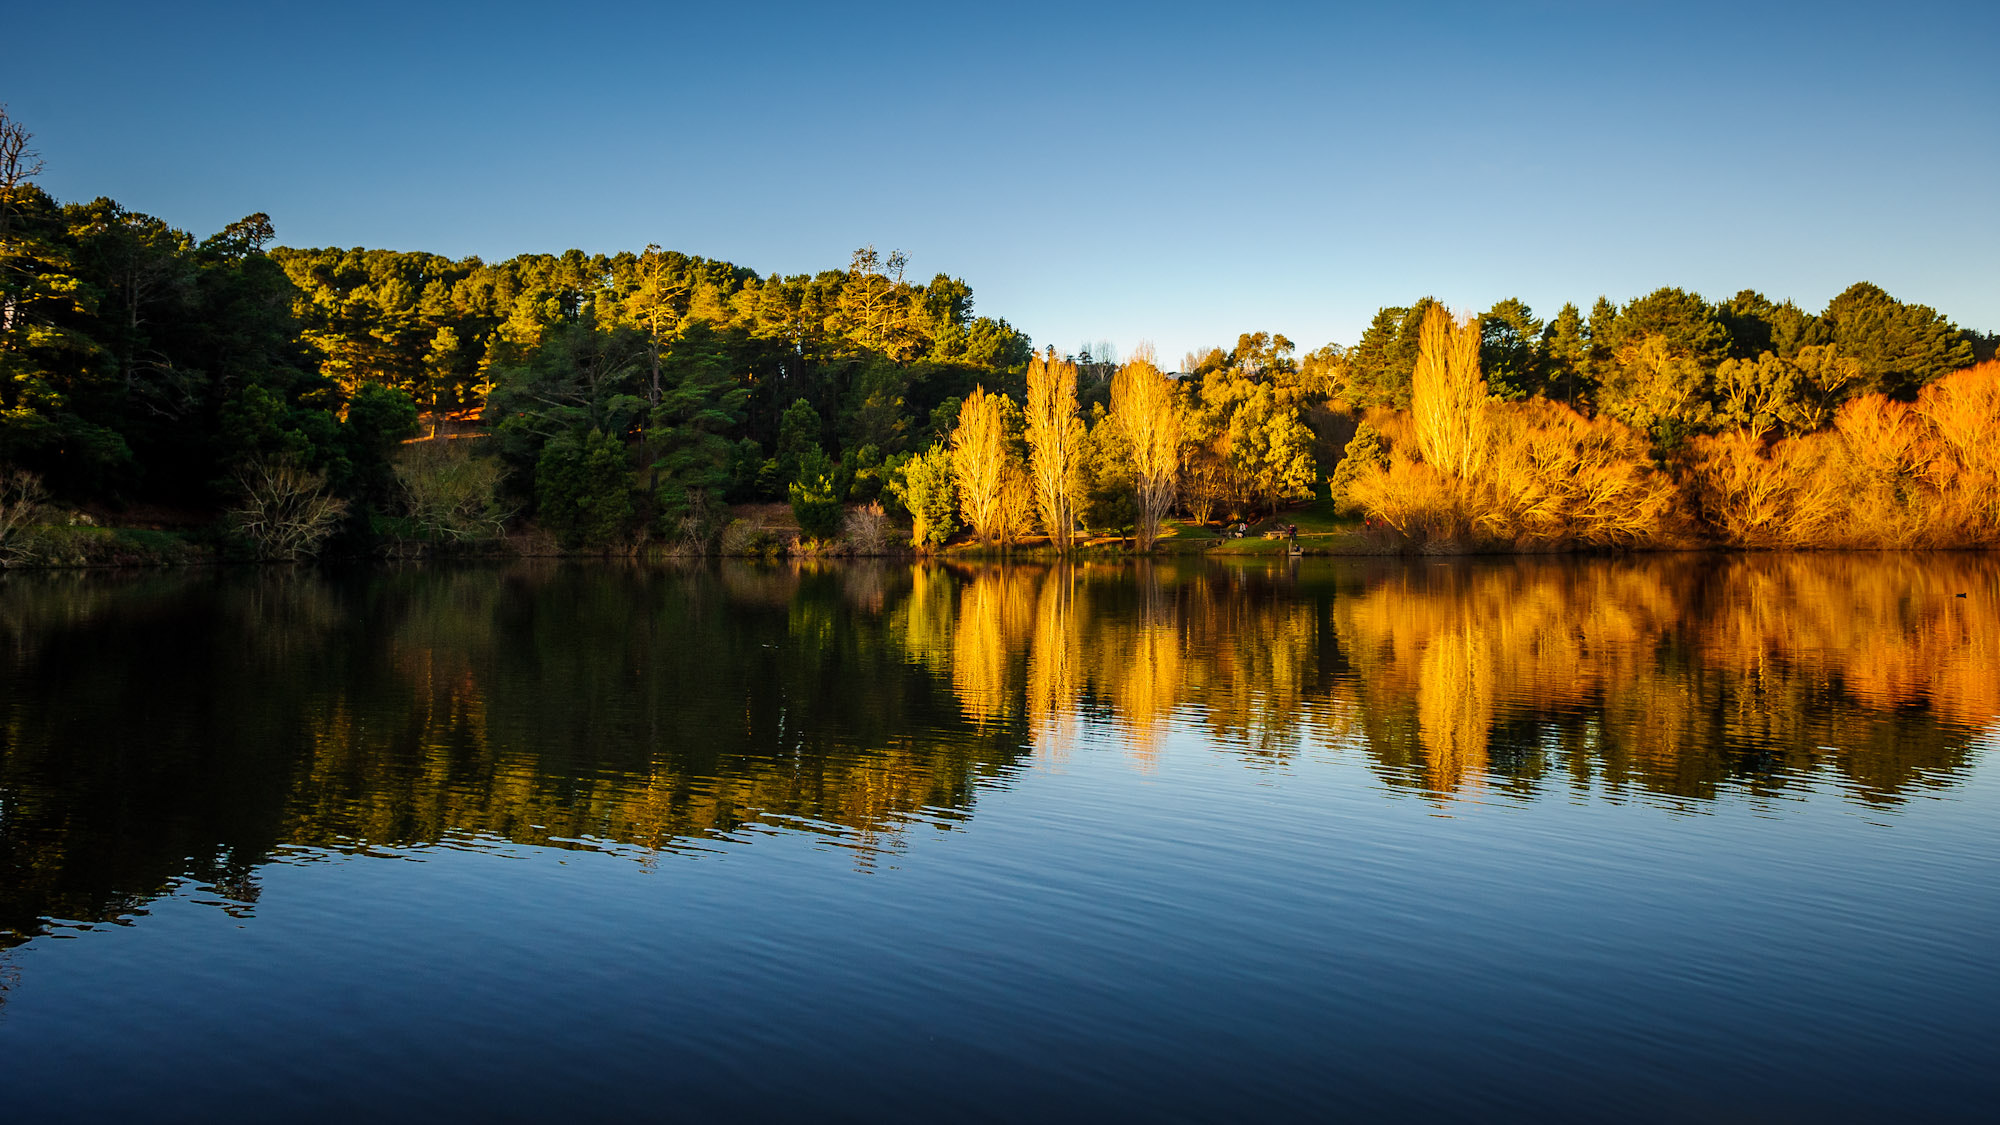 Photograph Daylesford Lake House by Alex Megremis on 500px